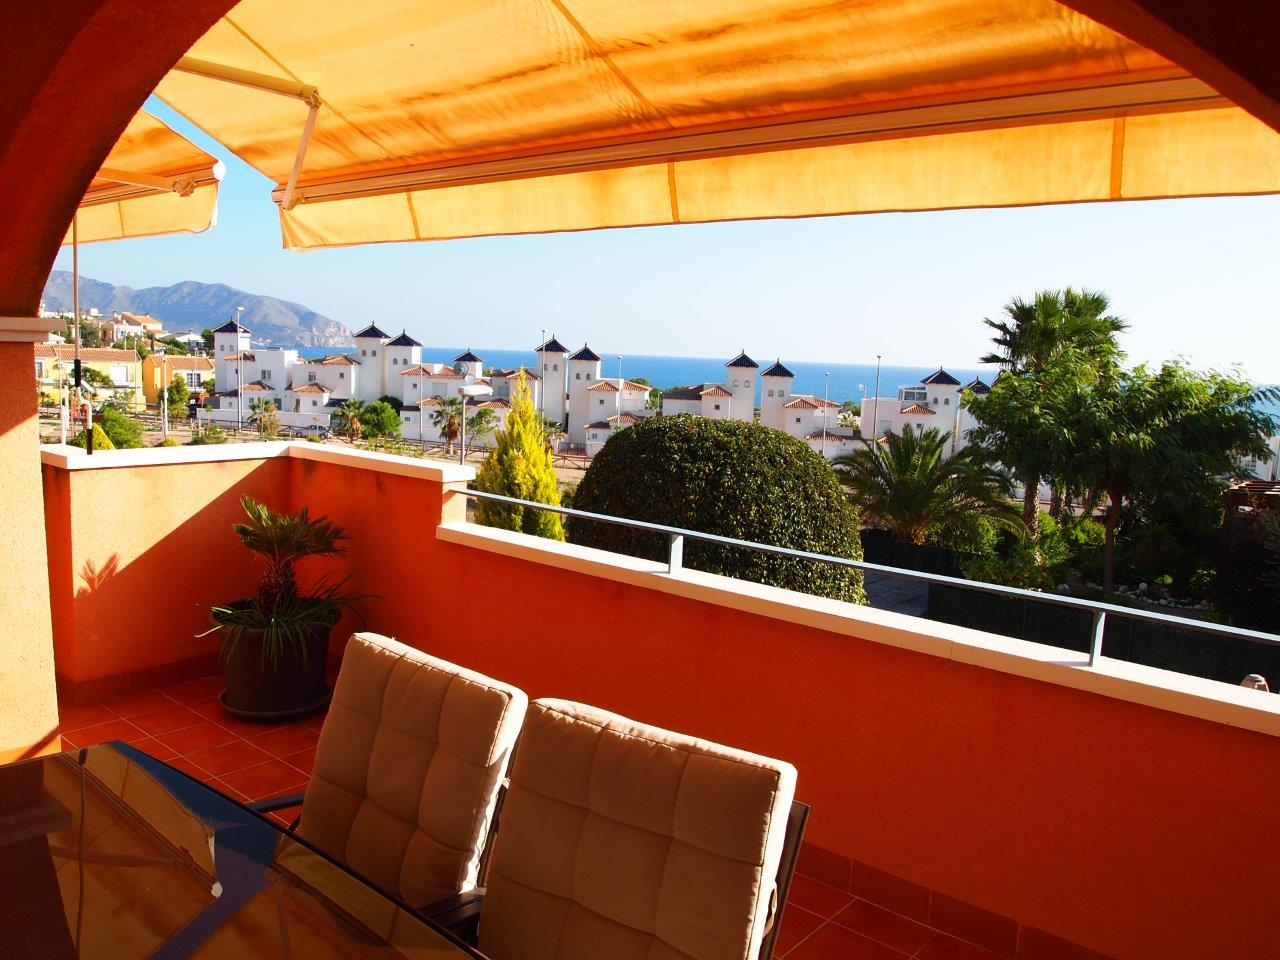 1202. SUPERB APARTMENT GROUND FLOOR SEA VIEWS AND SOUTH FACING, GARDEN AND LARGE TERRACE POOL